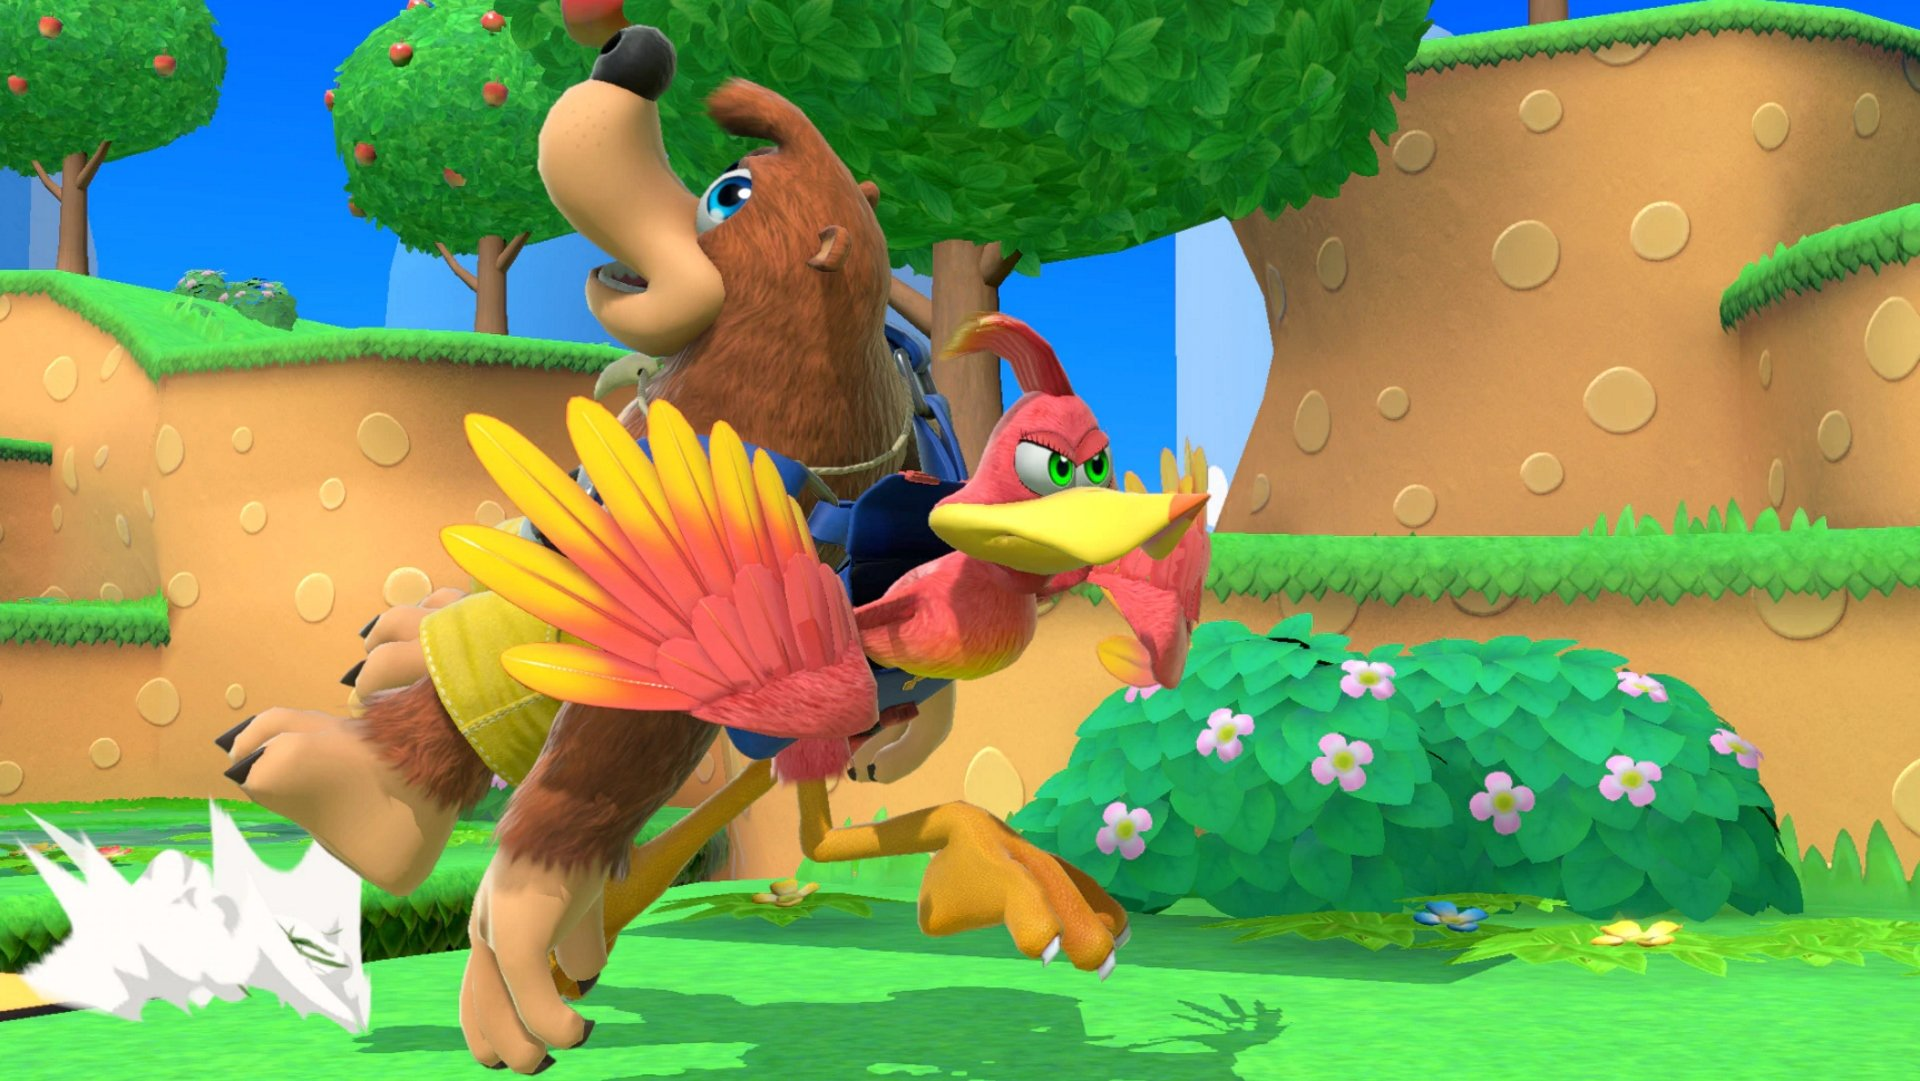 Banjo-Kazooie in Super Smash Bros Ultimate screenshots